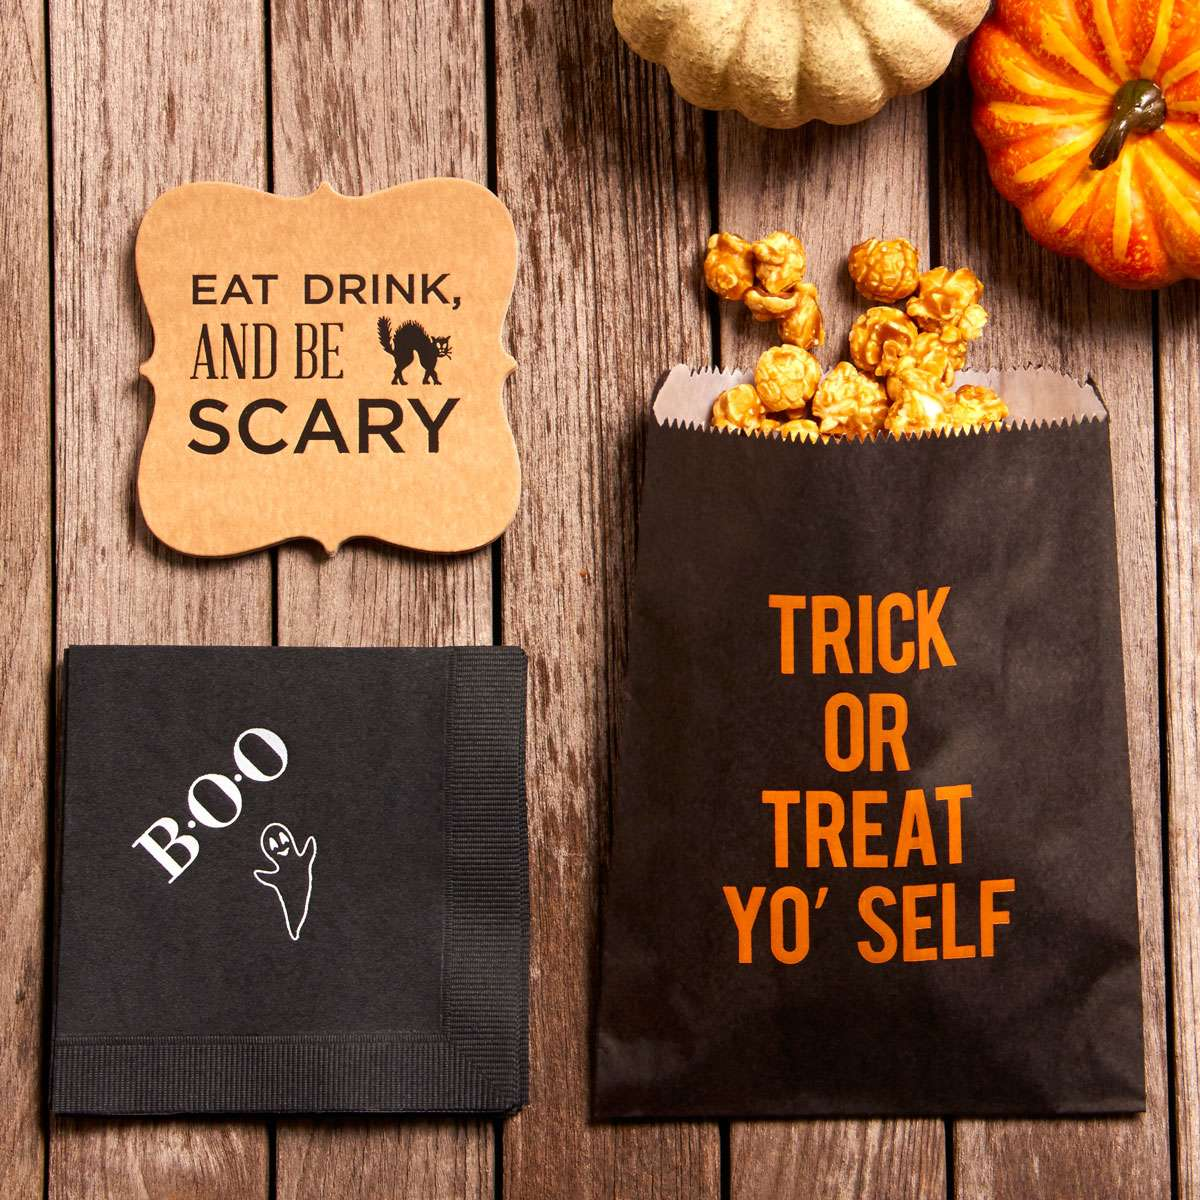 halloween party ideas personalized party favor bags personalized treat bags napkins and coasters